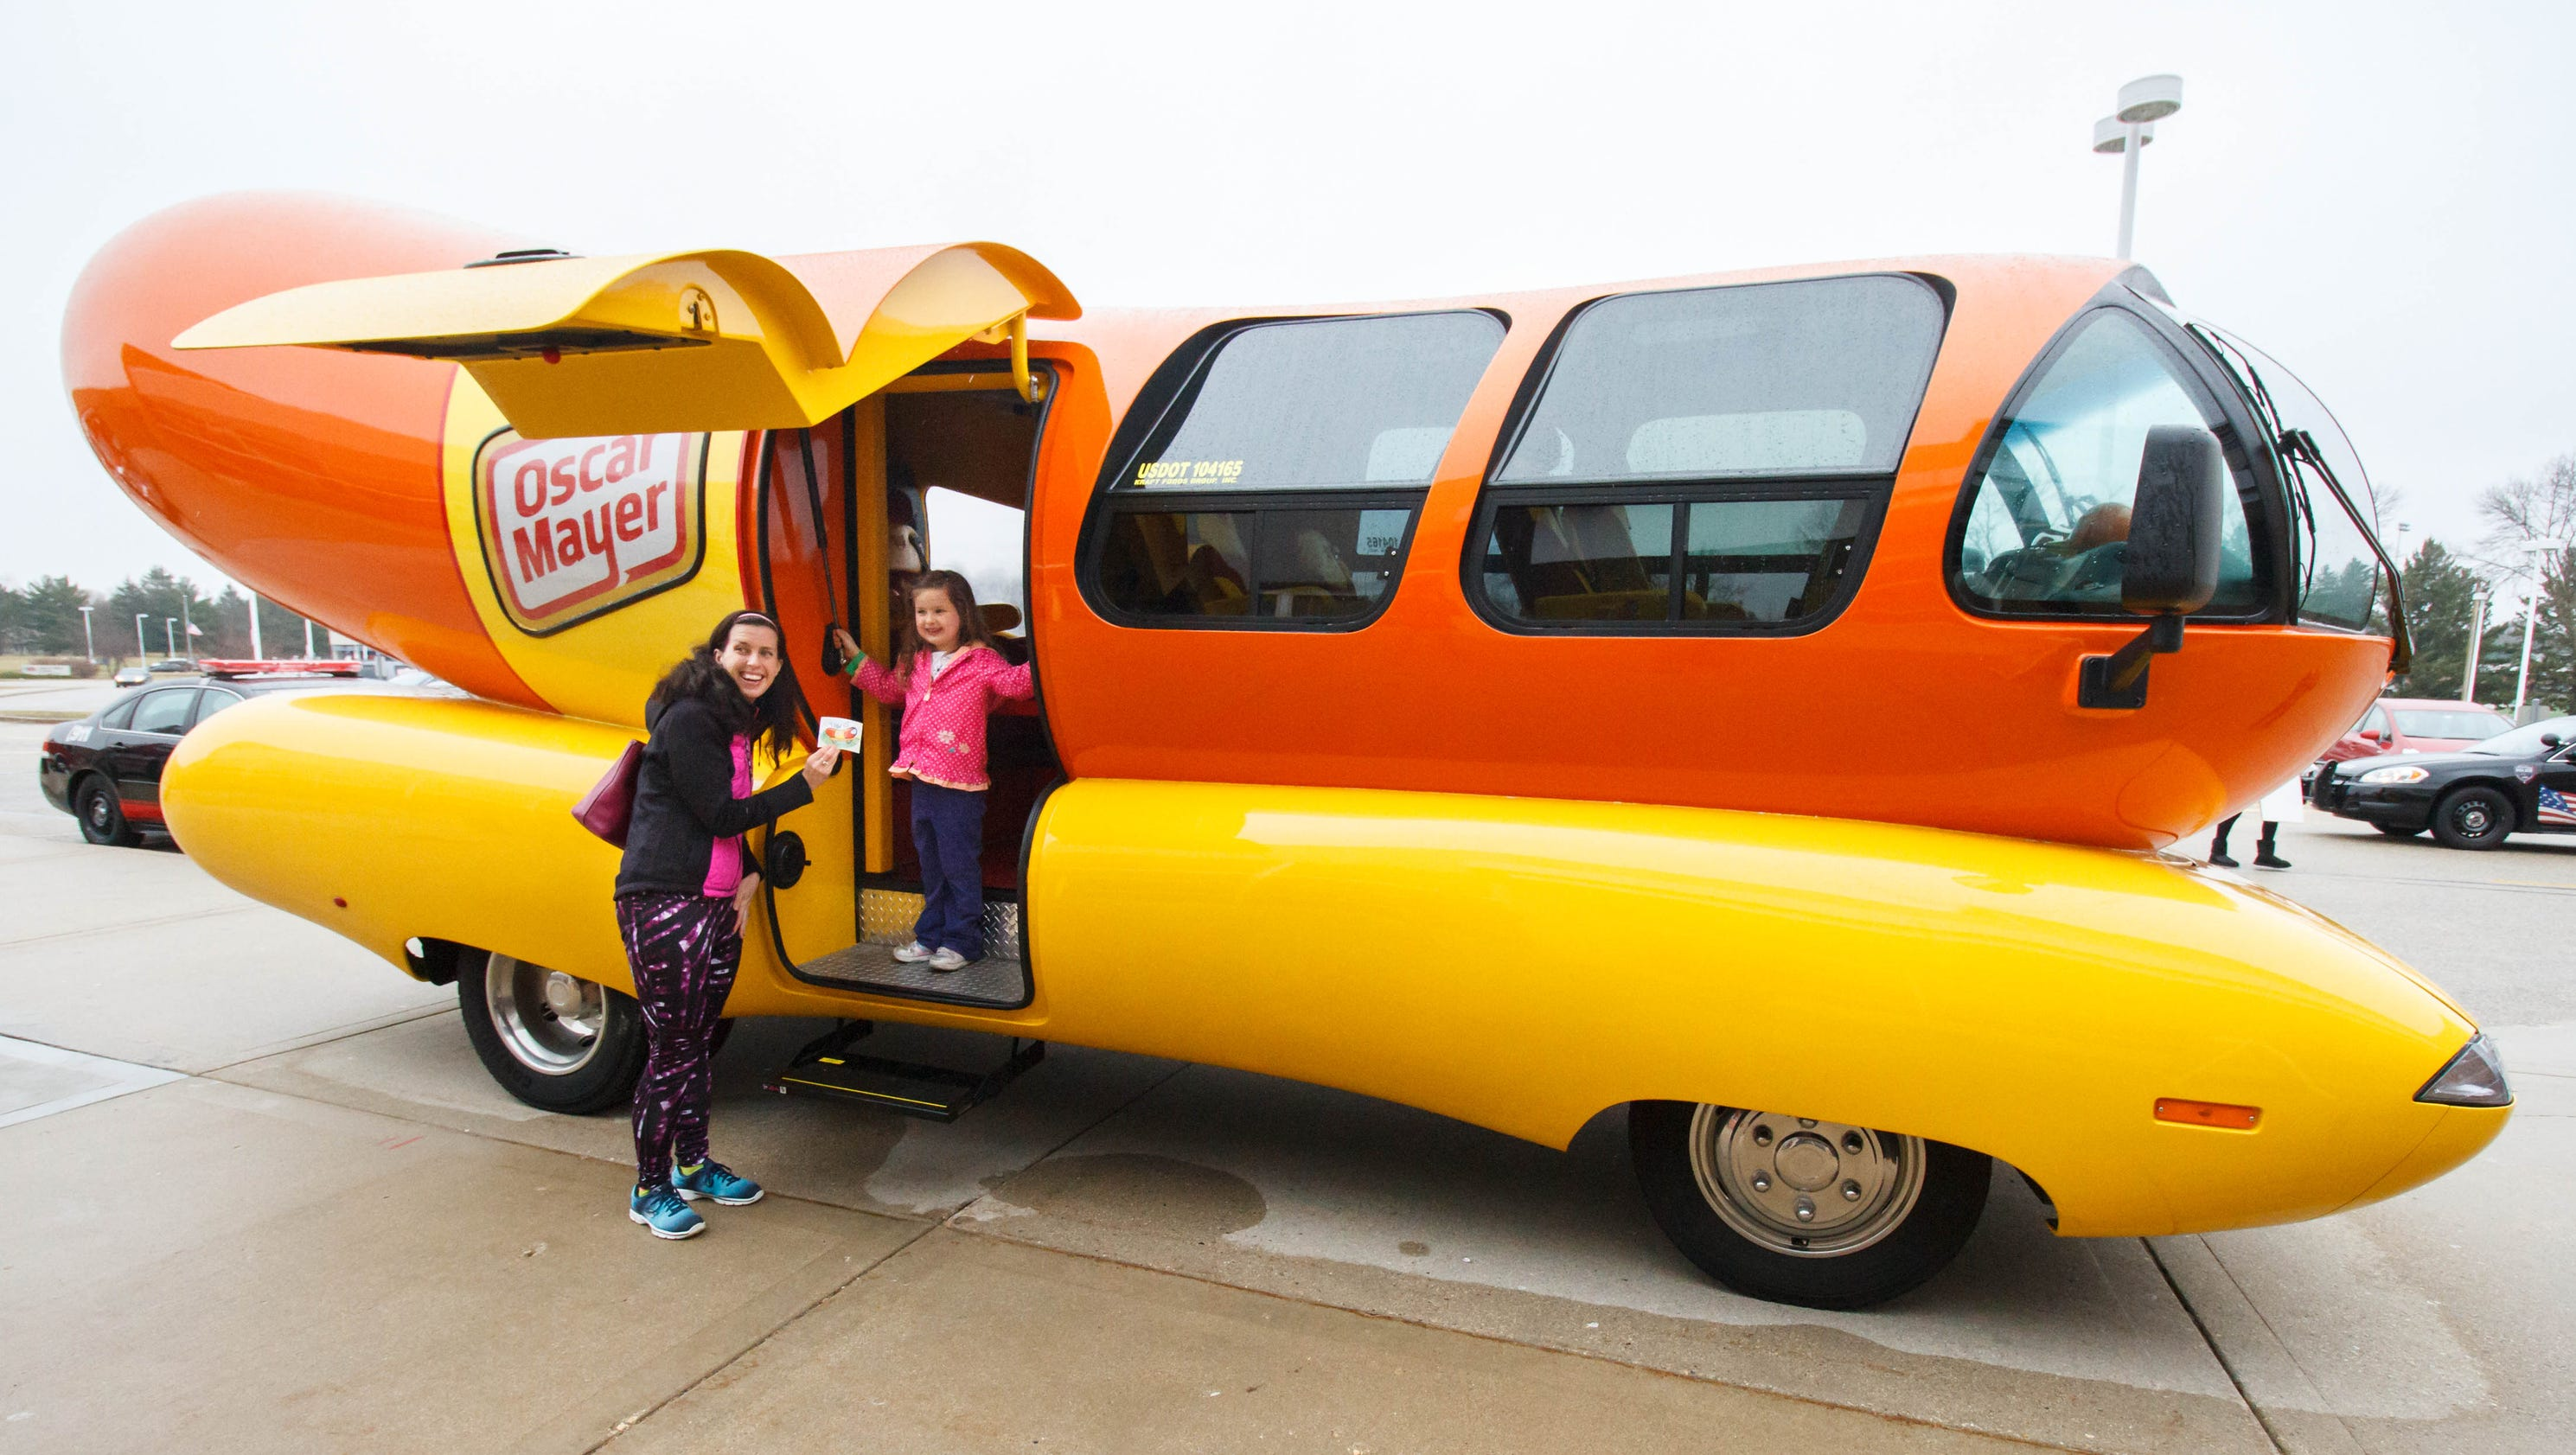 2007 07 01 archive likewise World S Largest Catsup Bottle Could Use Hand also Vintage Oscar Mayer Wiener Whistle 1960s further Photos together with Wienermobile. on old oscar mayer wienermobile